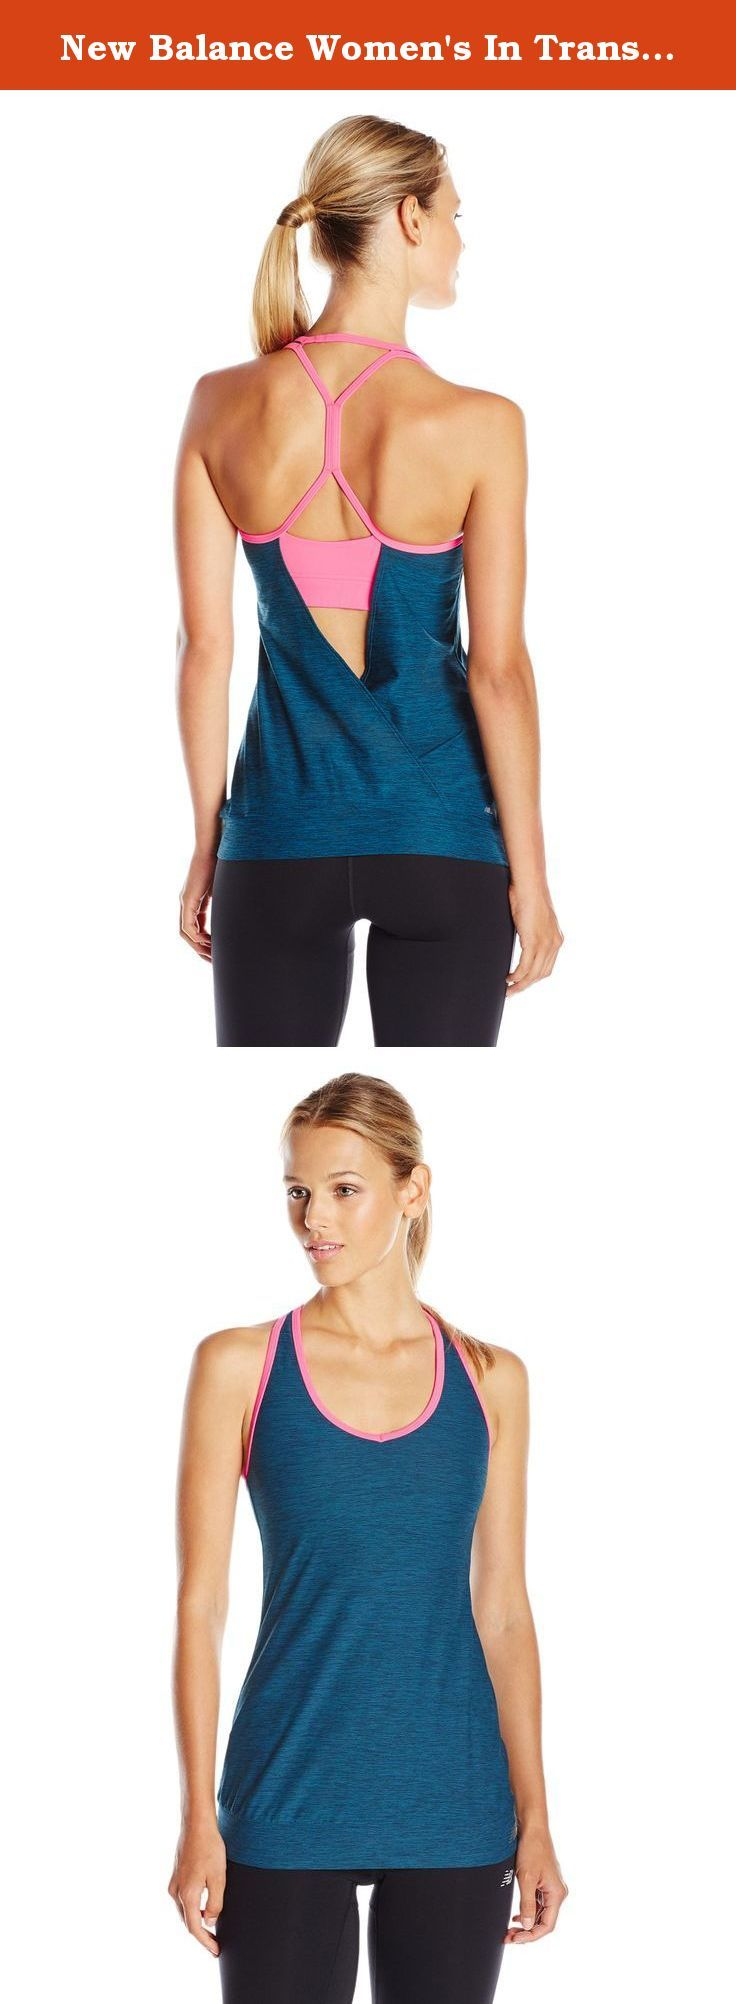 New Balance Women's In Transit Bra Top, Castaway Heather, Medium. The New Balance in transit bra top mixes sport with style. It has everything you appreciate when working out, from knit top with a supportive inner shelf bra with sweat-wicking nb dry technology. Plus, it has the looks to take you beyond the gym, with a modern loose fit, banded hem, and flirty racerback style.